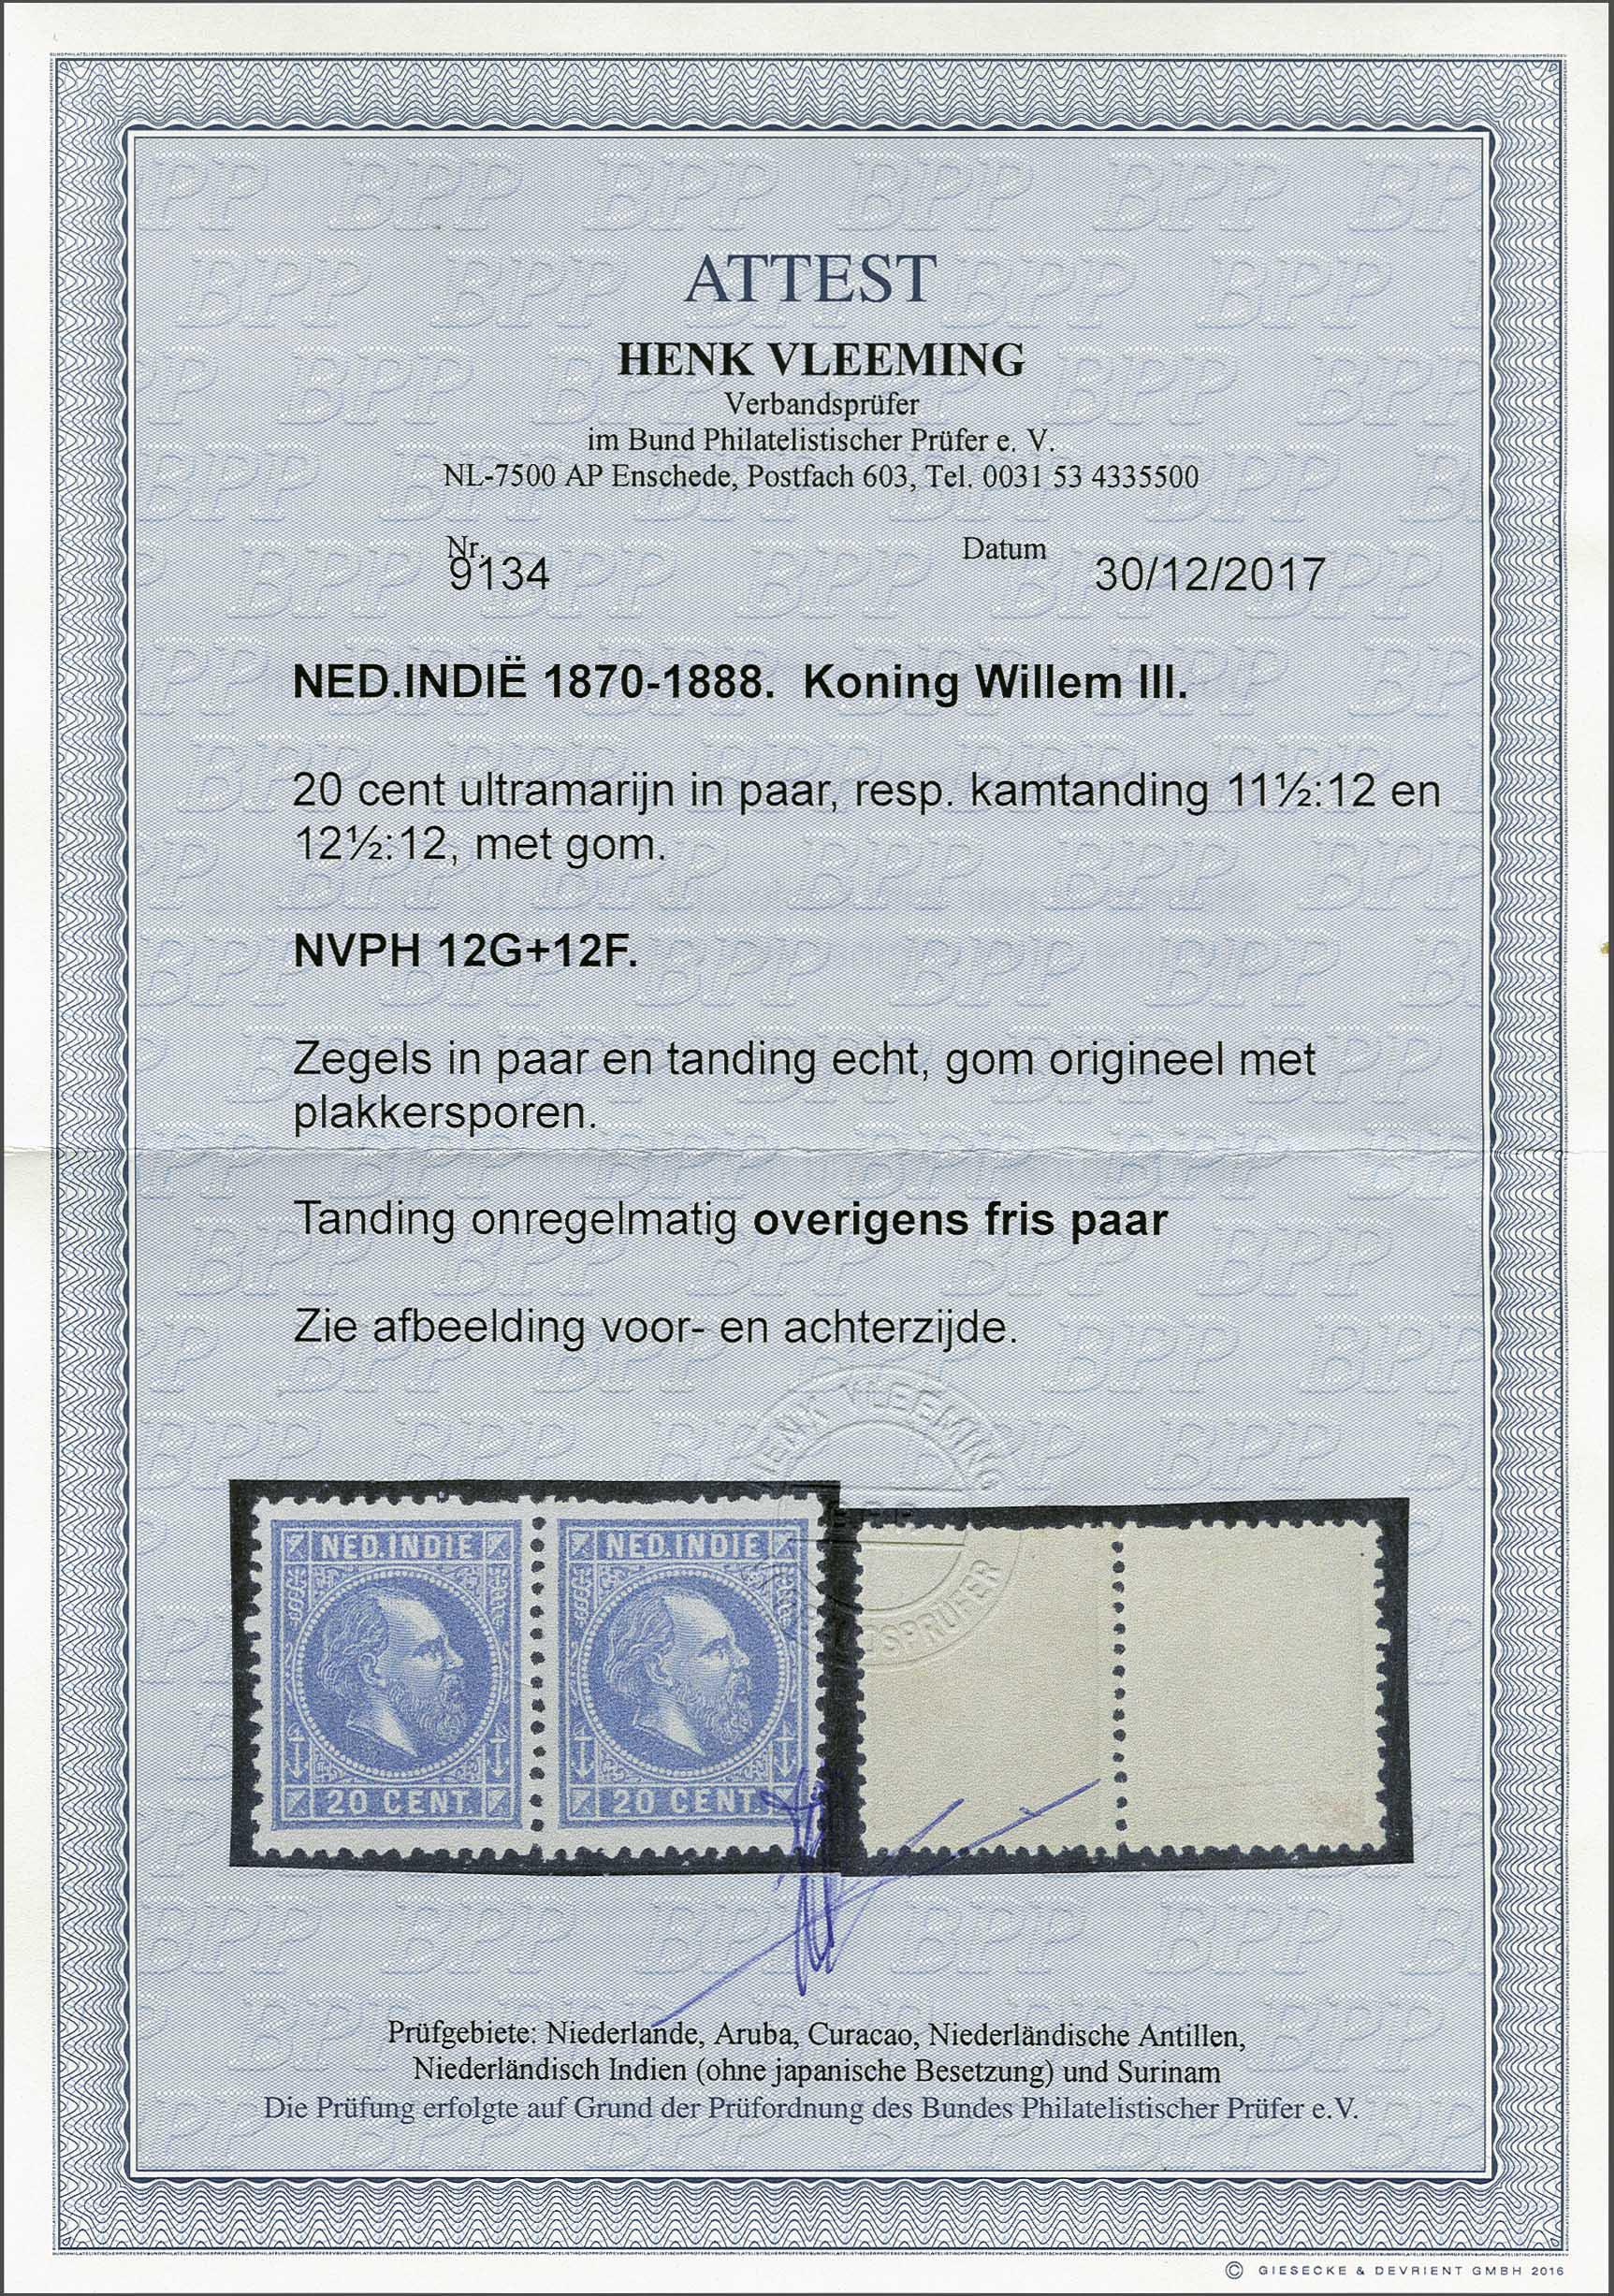 Lot 19 - Netherlands and Former Territories dutch east indies -  Corinphila veilingen Auction 236: Netherlands Colonies - The J.F. de Beaufort collection